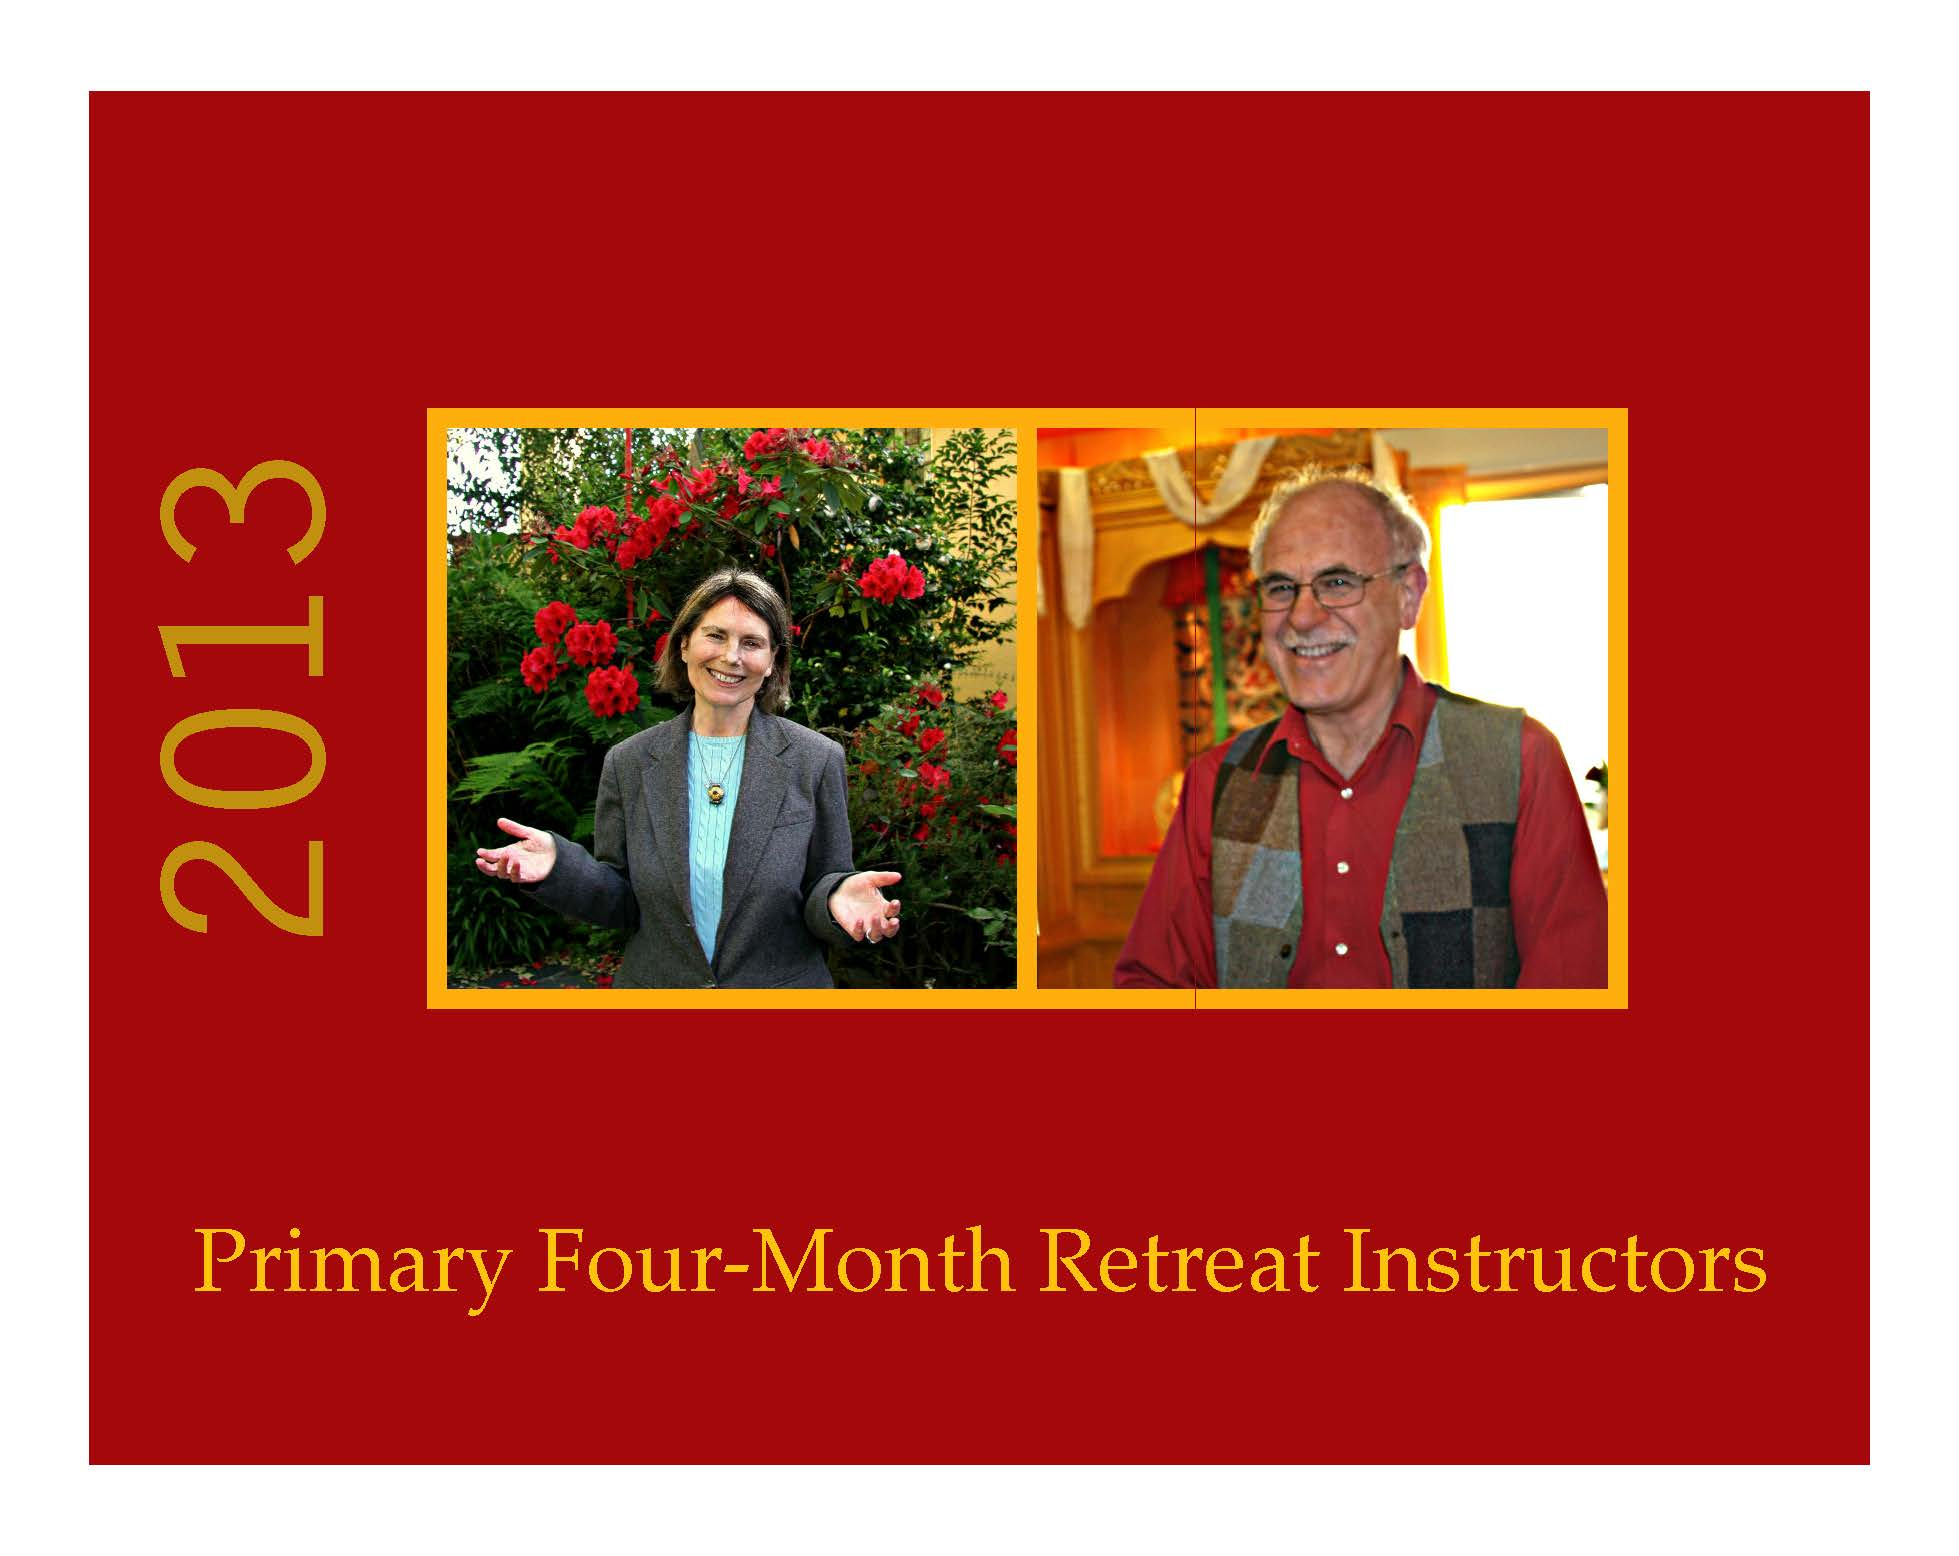 Sylvia Gretchen and Jack Petranker are the primary retreat instructors.